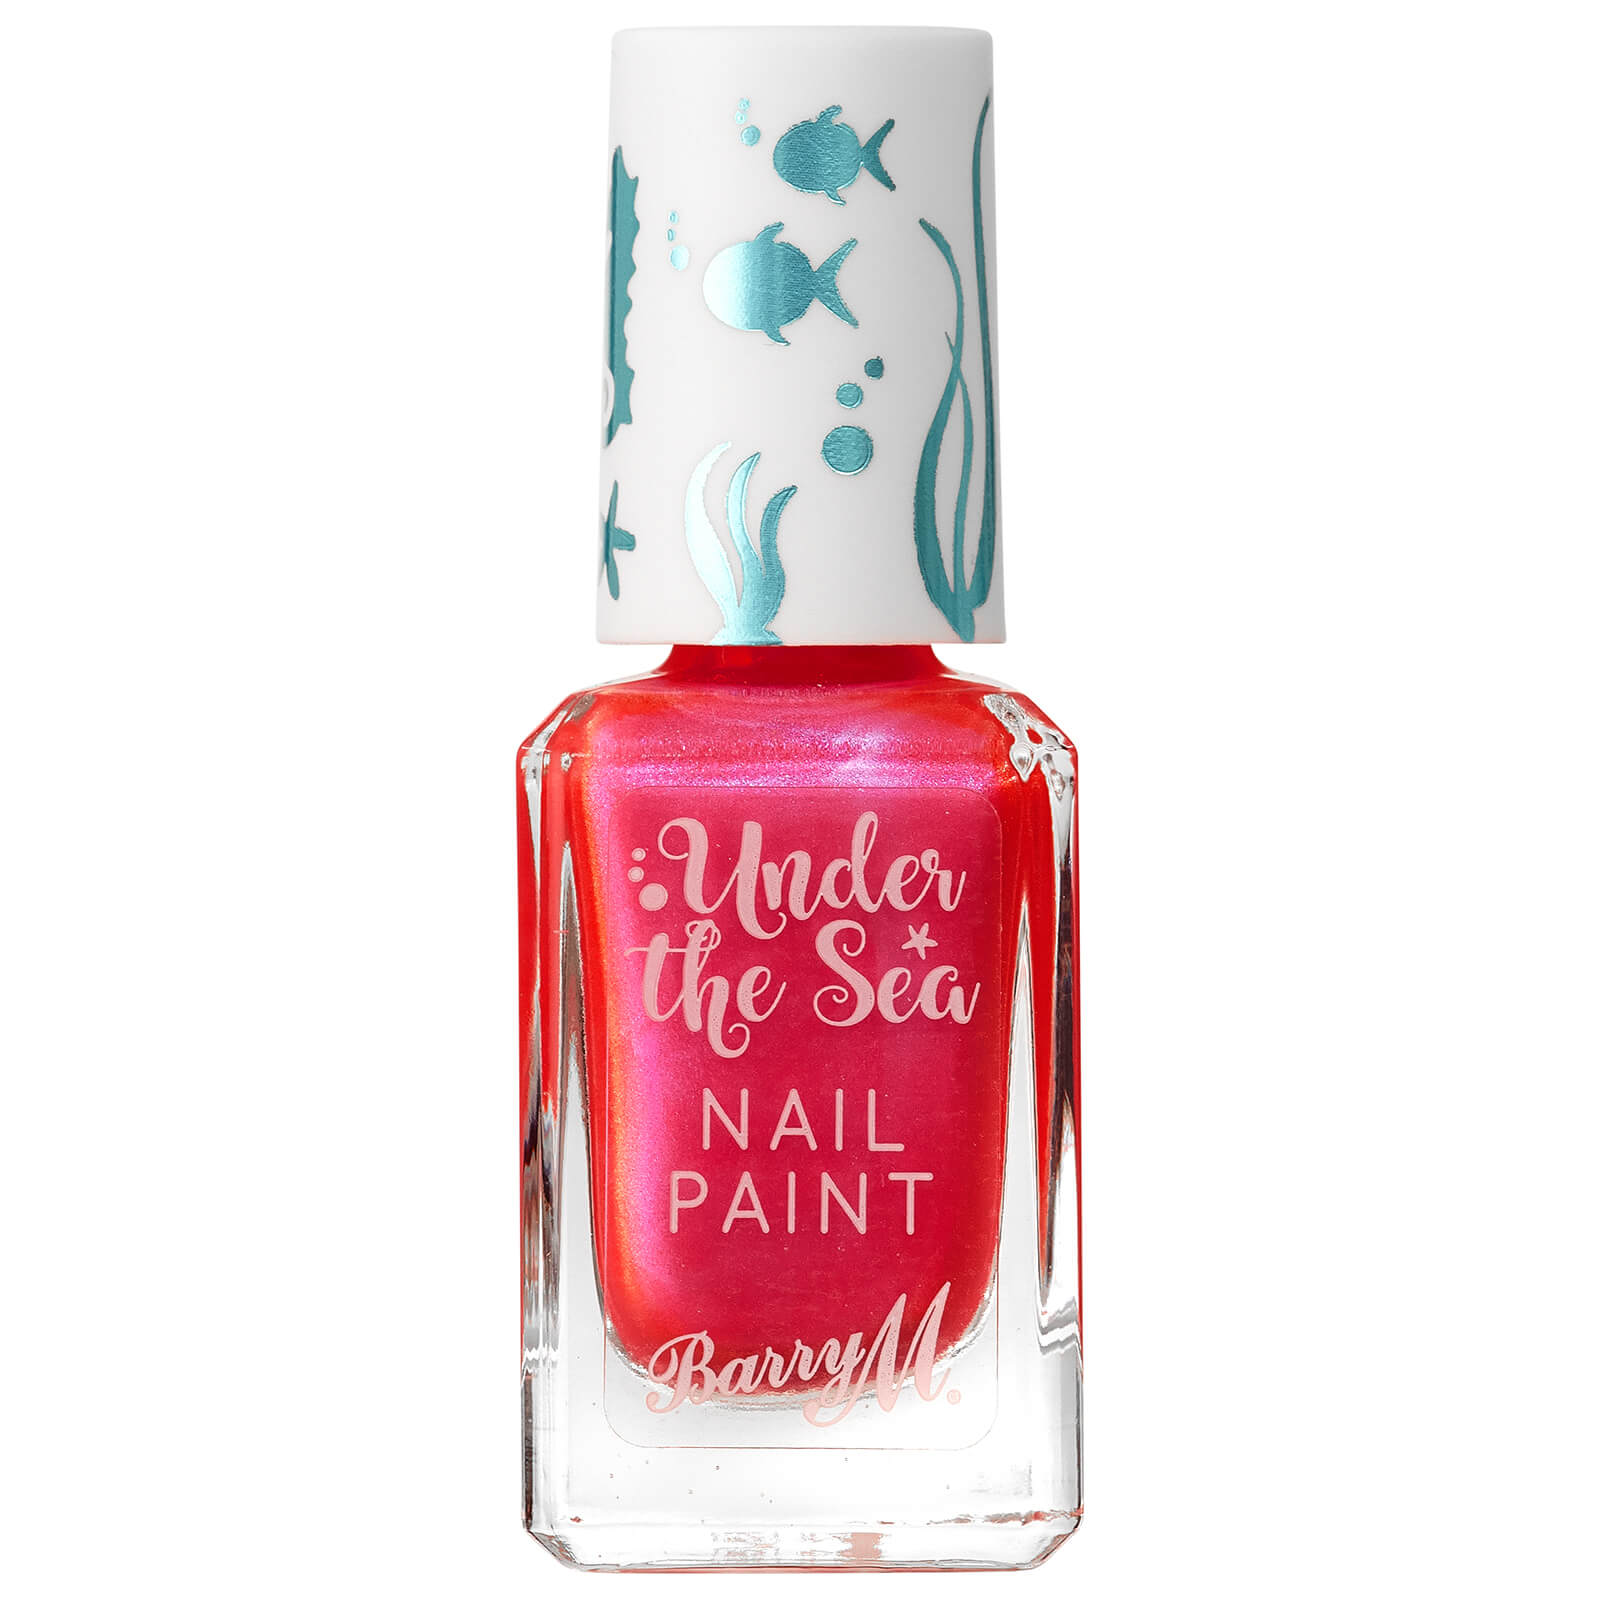 7ddd2269fef Barry M Cosmetics Under The Sea Nail Paint (Various Shades) | Free US  Shipping | lookfantastic